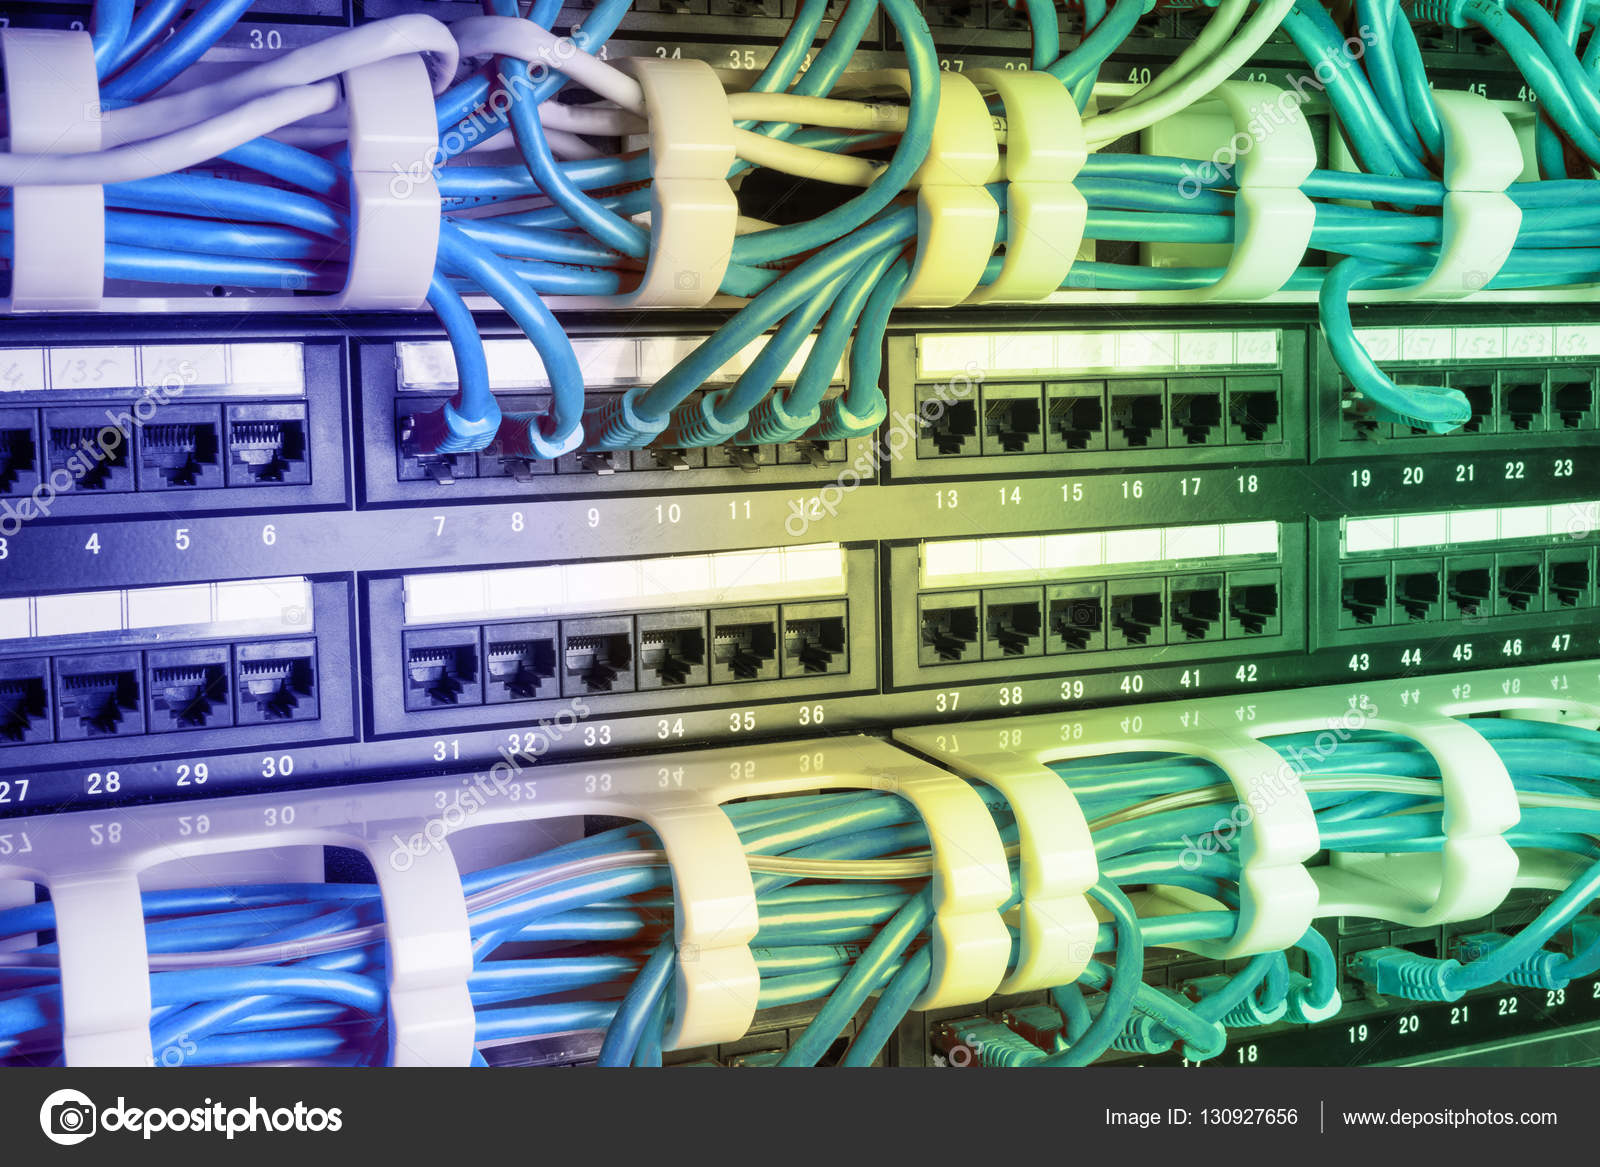 Swell Server Rack Met Blauwe Kabels Stockfoto C Angelus Liam 130927656 Wiring Digital Resources Funapmognl